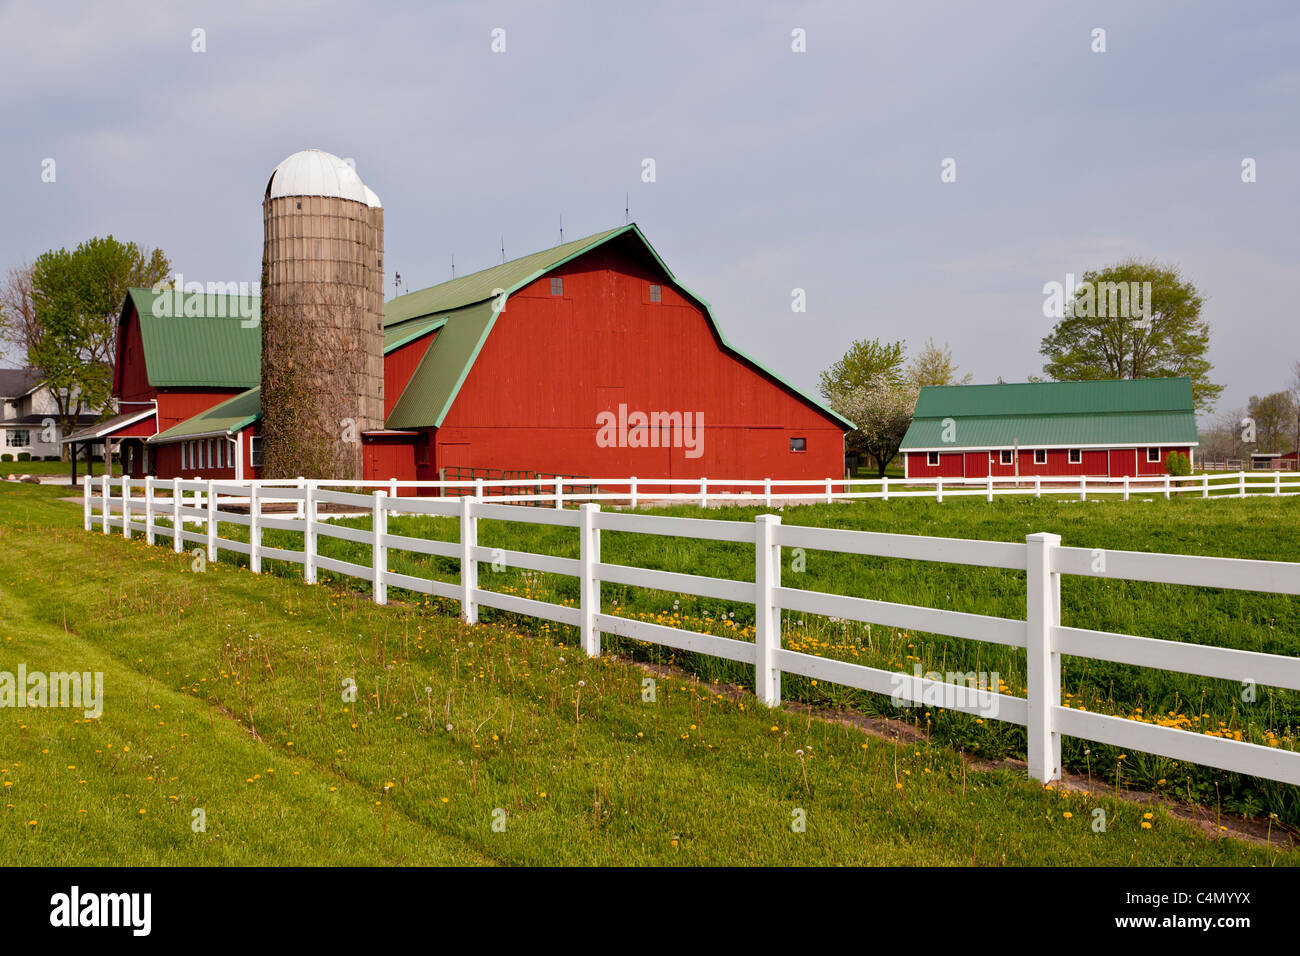 A red dairy barn with white fence in Middlebury, Indiana, USA. - Stock Image